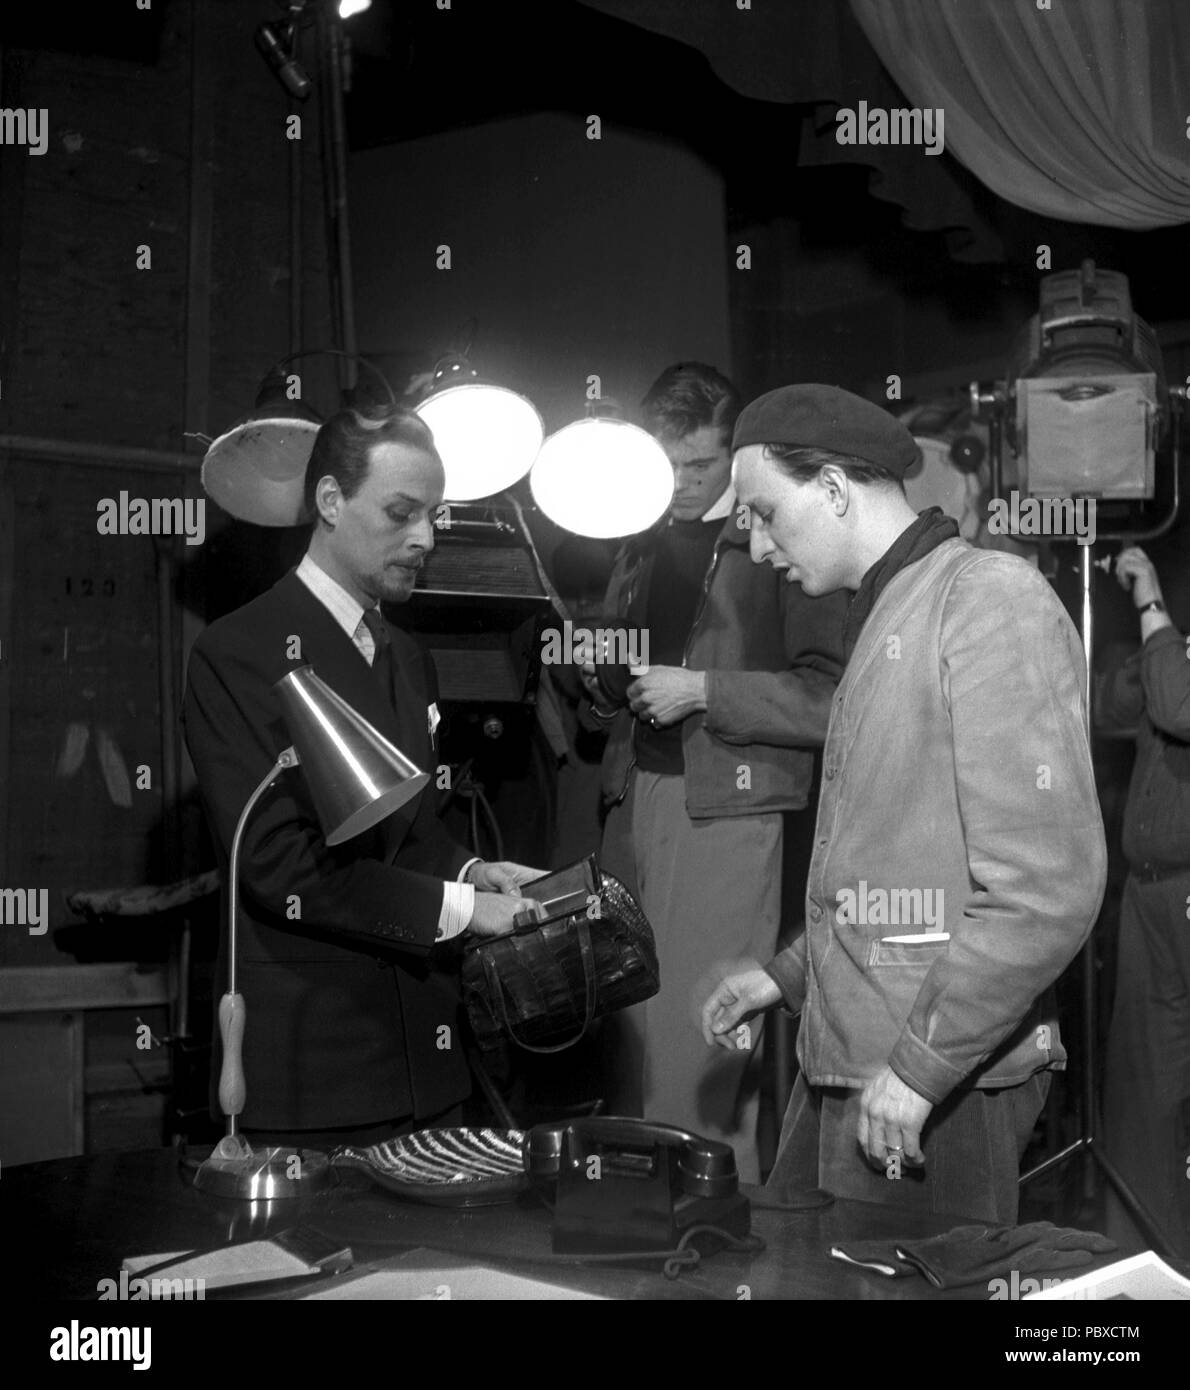 Ingmar Bergman. 1918-2007.  Swedish film director. Pictured here 1949 together on the film set of the movie Thirst with actor Hasse Ekman who plays the part of Dr. Rosengren in the film. Photographer: Kristoffersson/AP38-4 - Stock Image